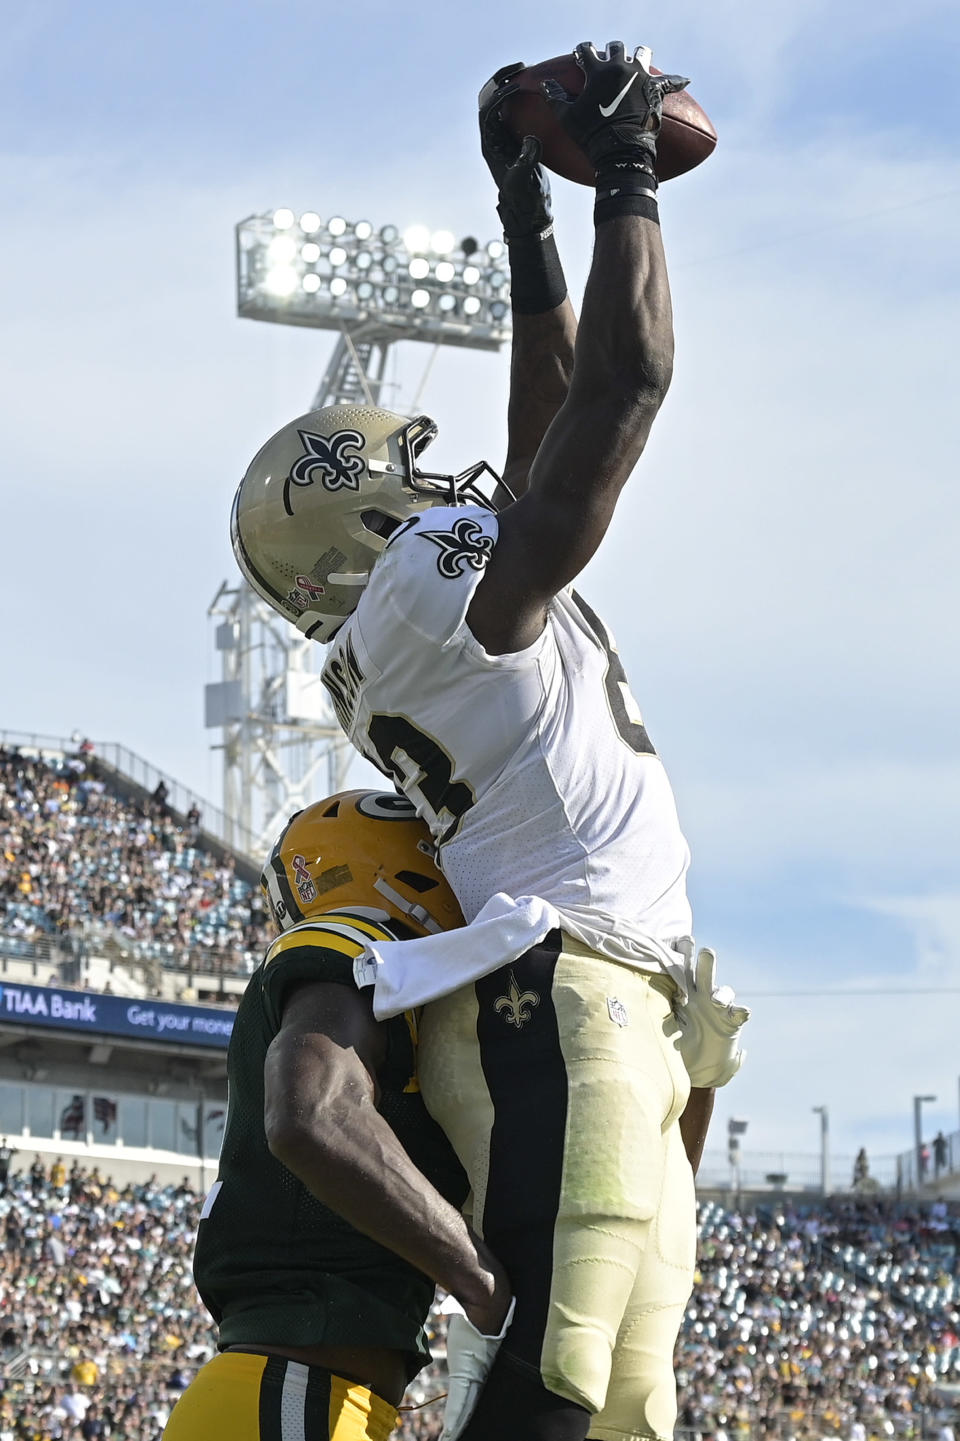 New Orleans Saints tight end Juwan Johnson, right, reaches up for a touchdown reception over Green Bay Packers strong safety Adrian Amos, left, during the first half of an NFL football game, Sunday, Sept. 12, 2021, in Jacksonville, Fla. (AP Photo/Phelan M. Ebenhack)